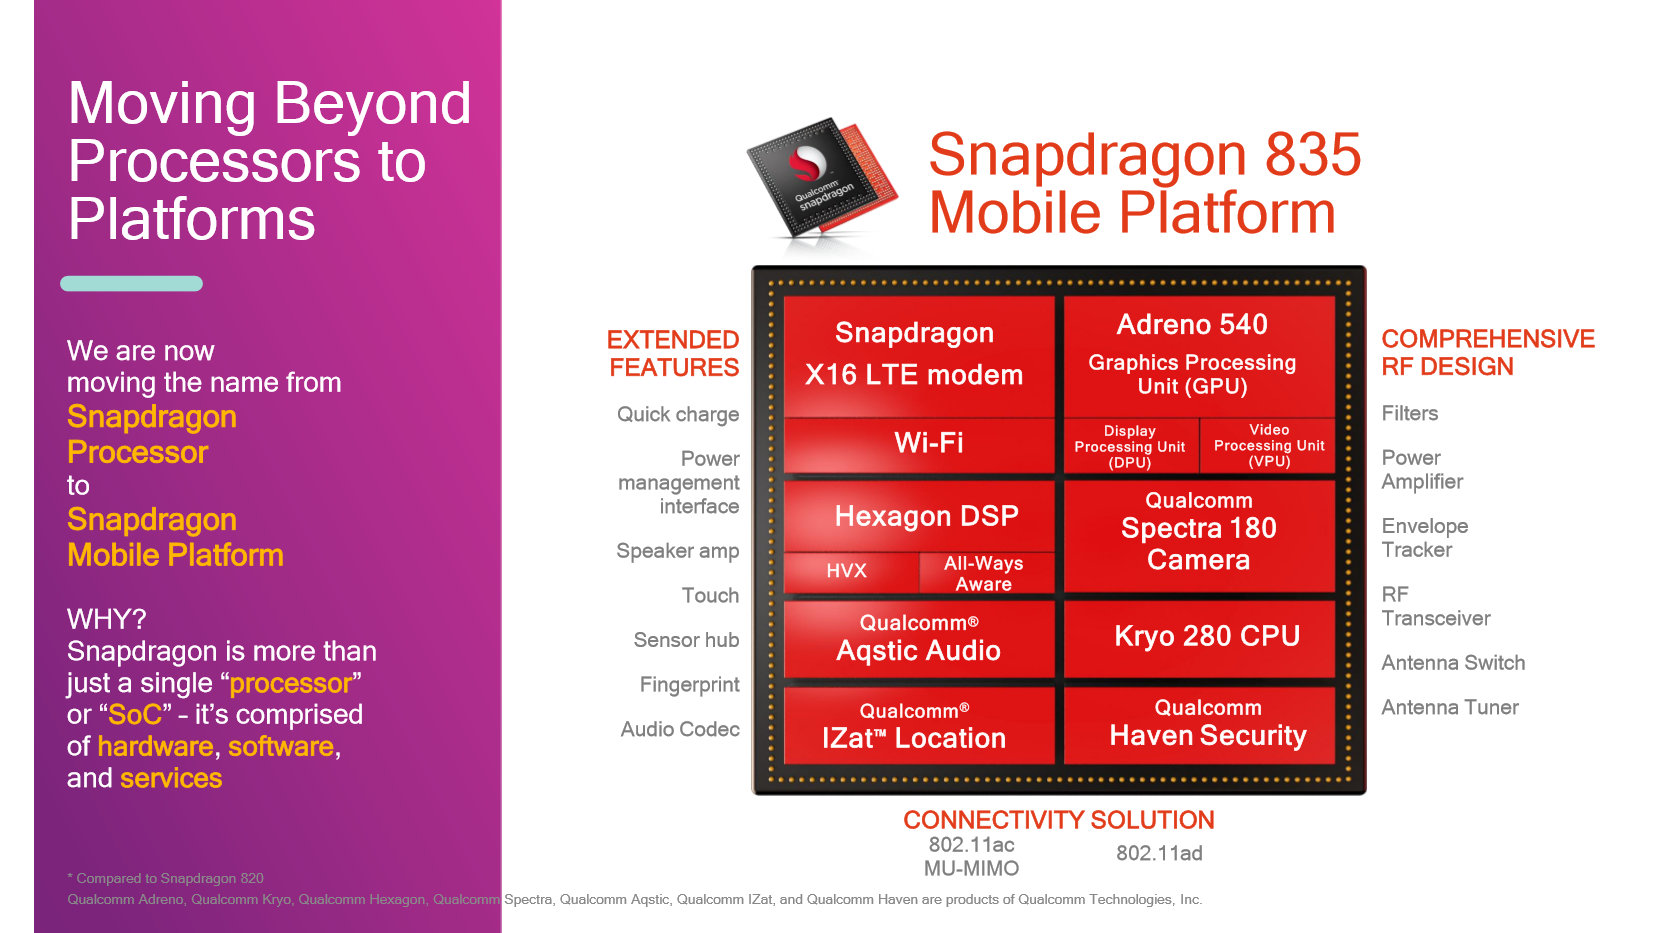 Qualcomm Snapdragon 835 Mobile Platform